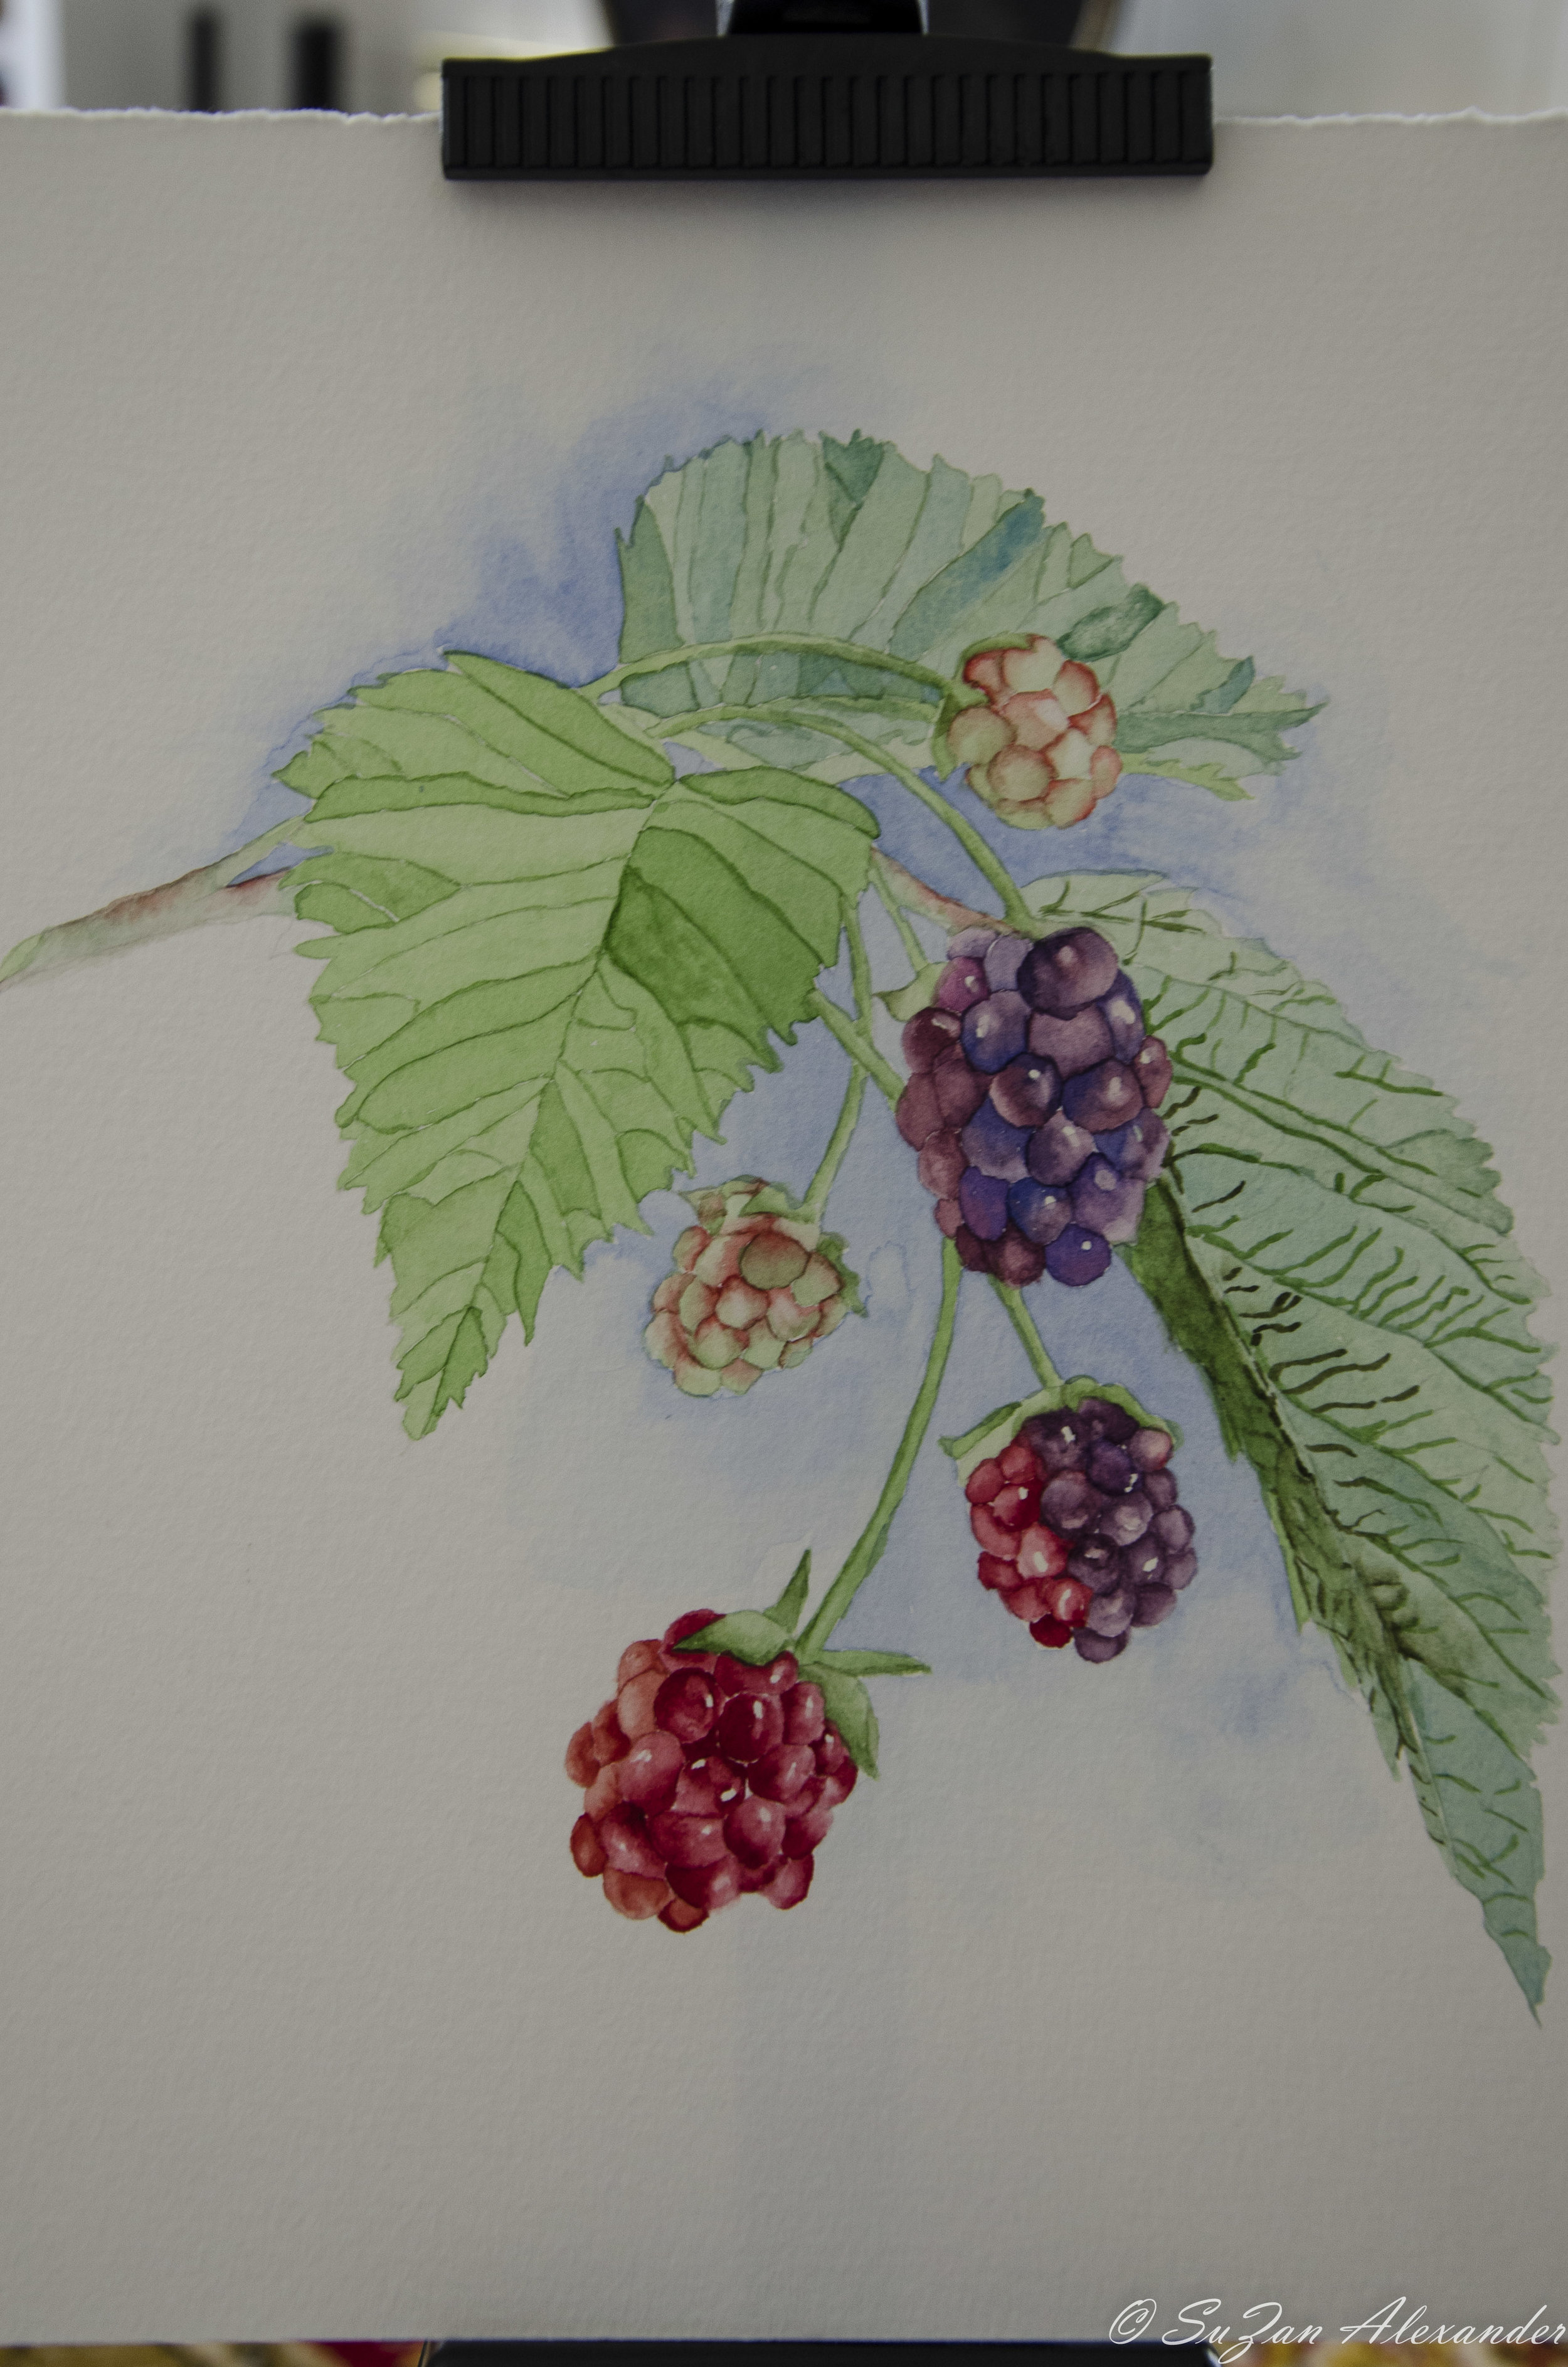 Watercolor Project 3: Cluster of Berries